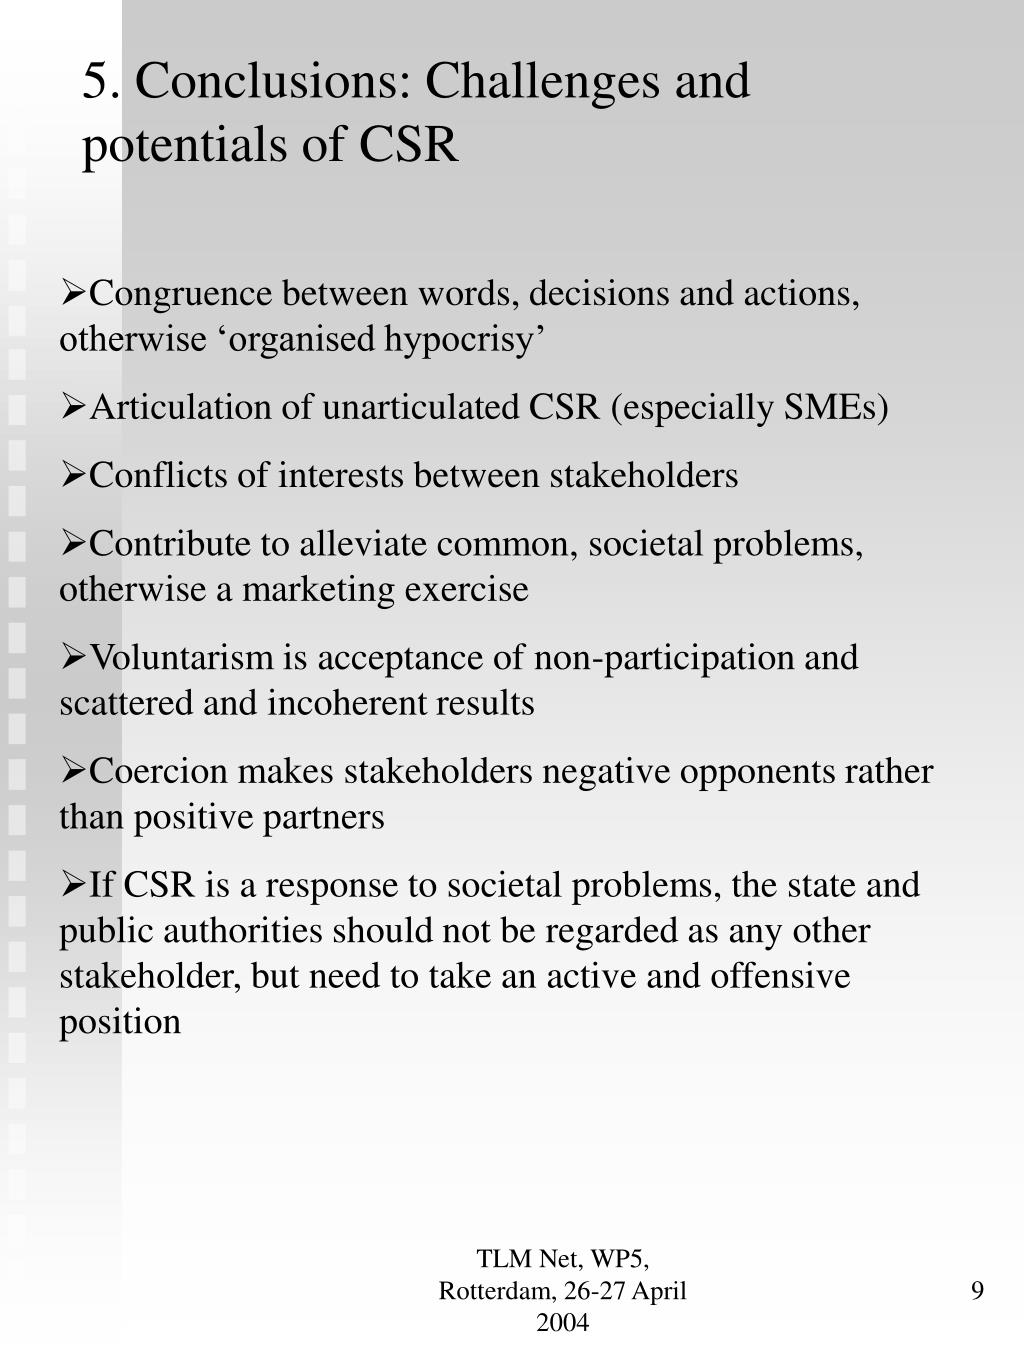 5. Conclusions: Challenges and potentials of CSR